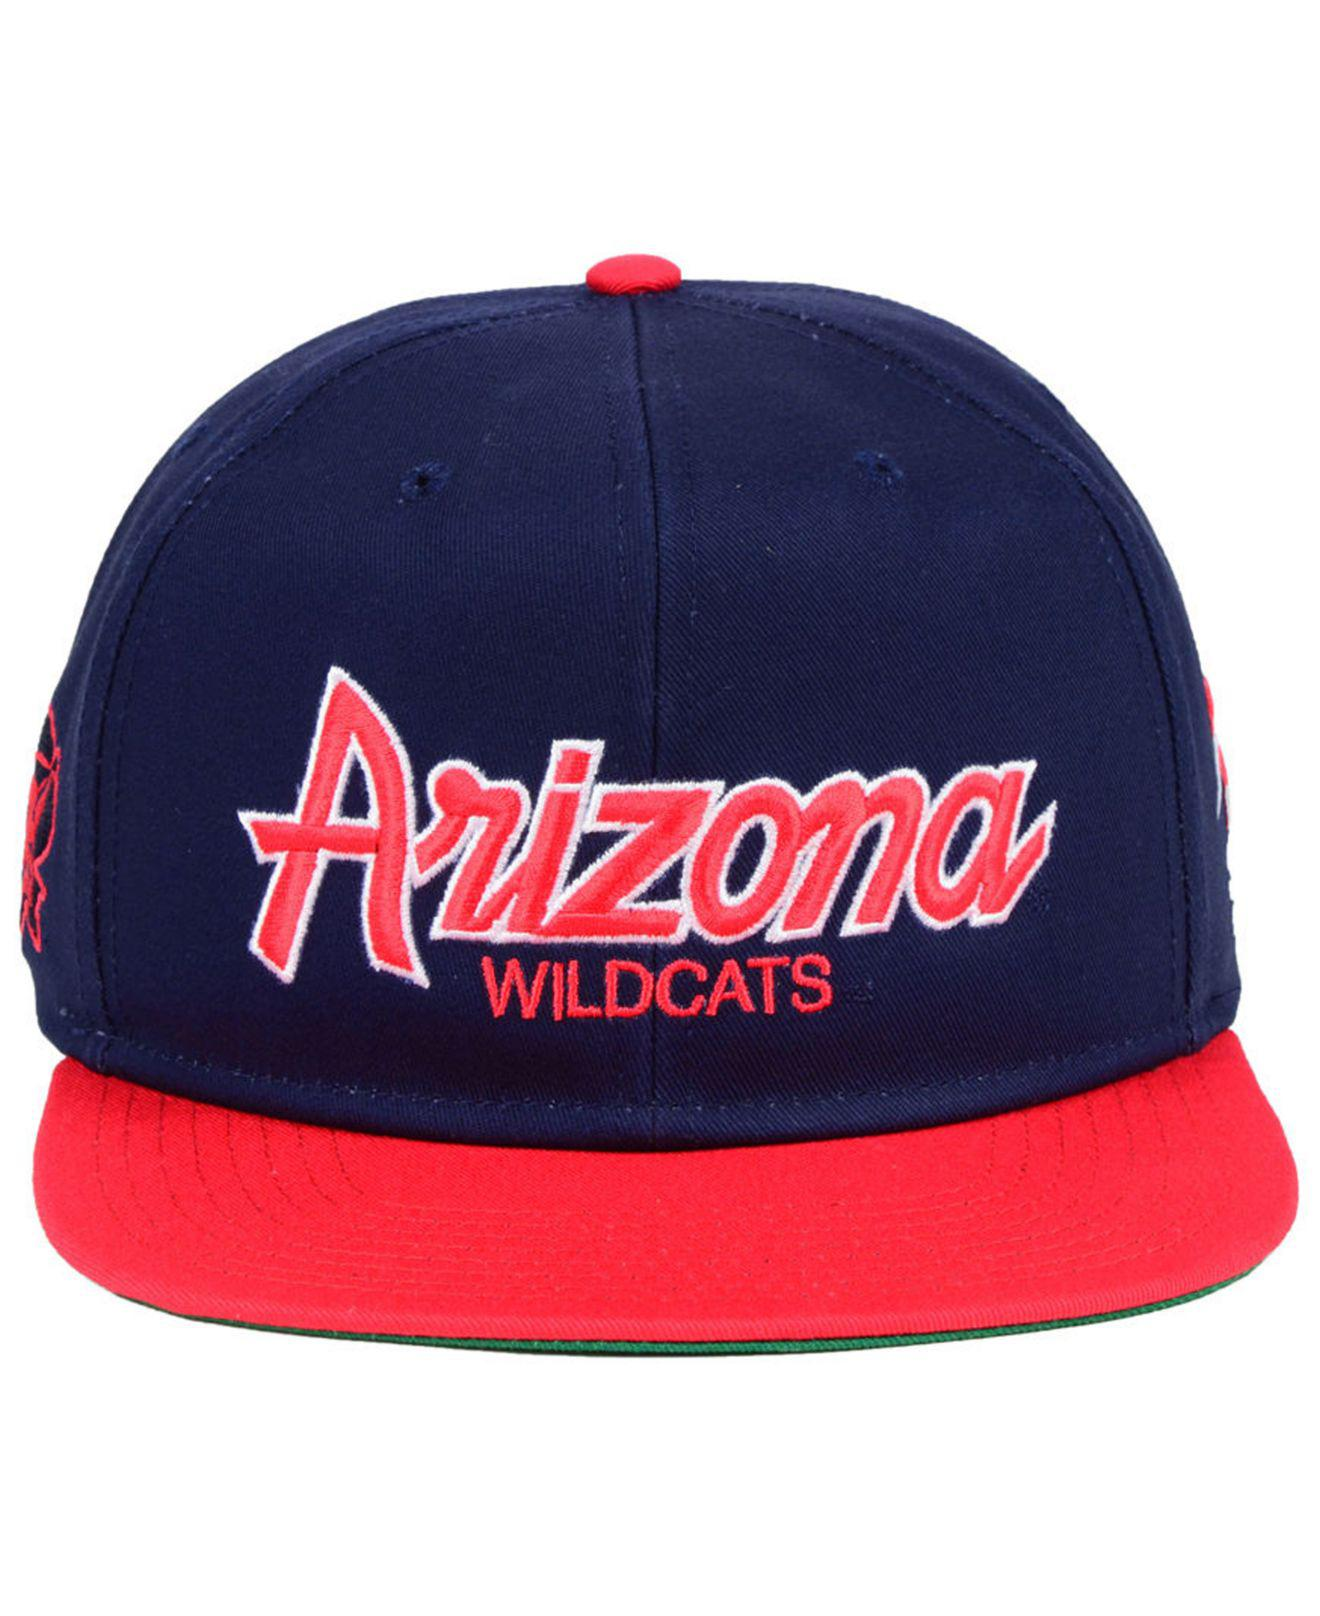 06ab058217c ... hat adjustable cap 19b0a 5d583 promo code for lyst nike arizona  wildcats sport specialties snapback cap in blue for men 85f18 ...